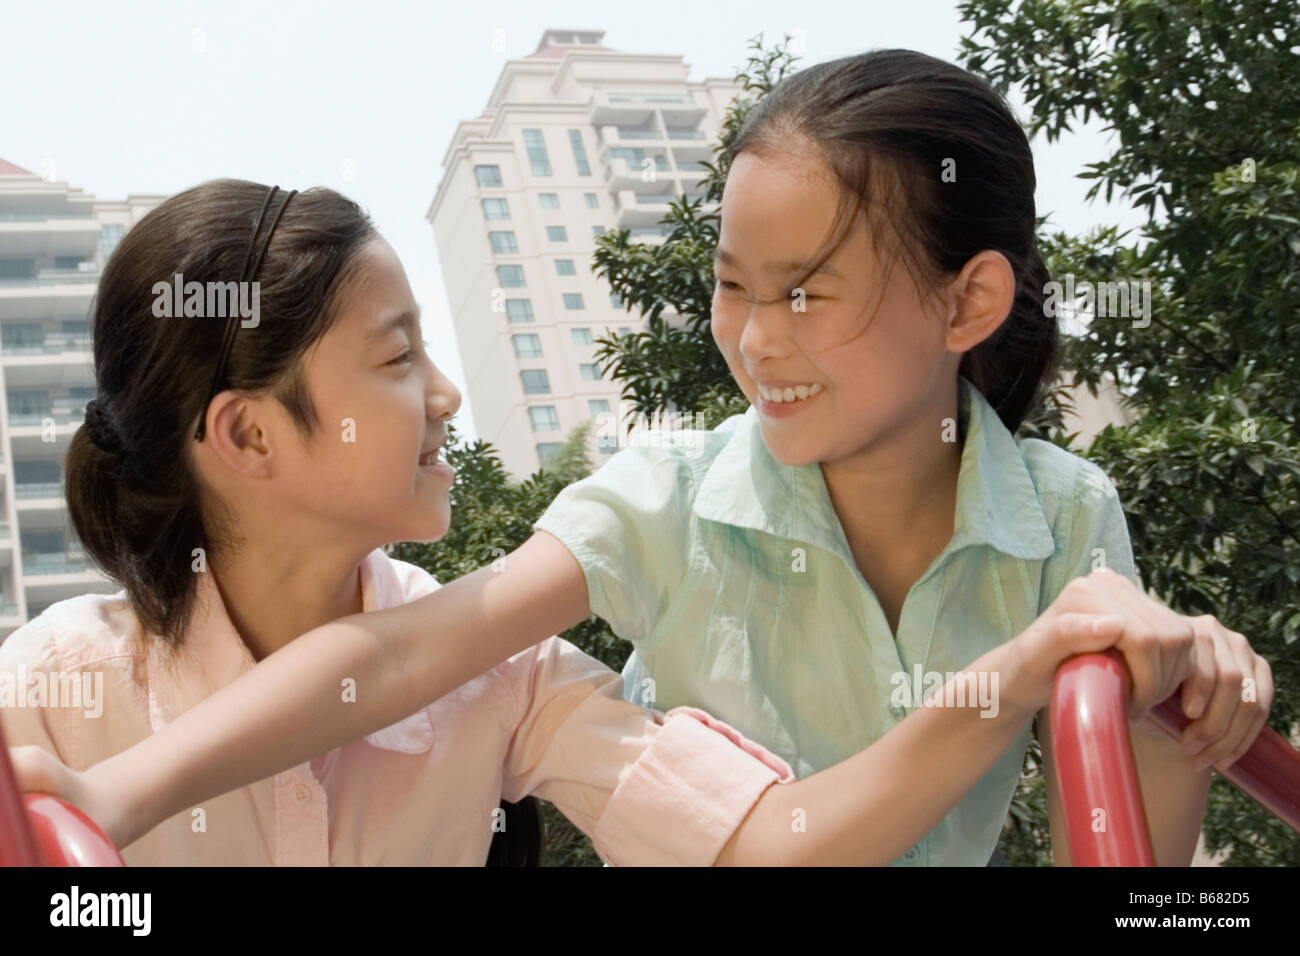 Girl and her sister playing on a merry-go-round - Stock Image